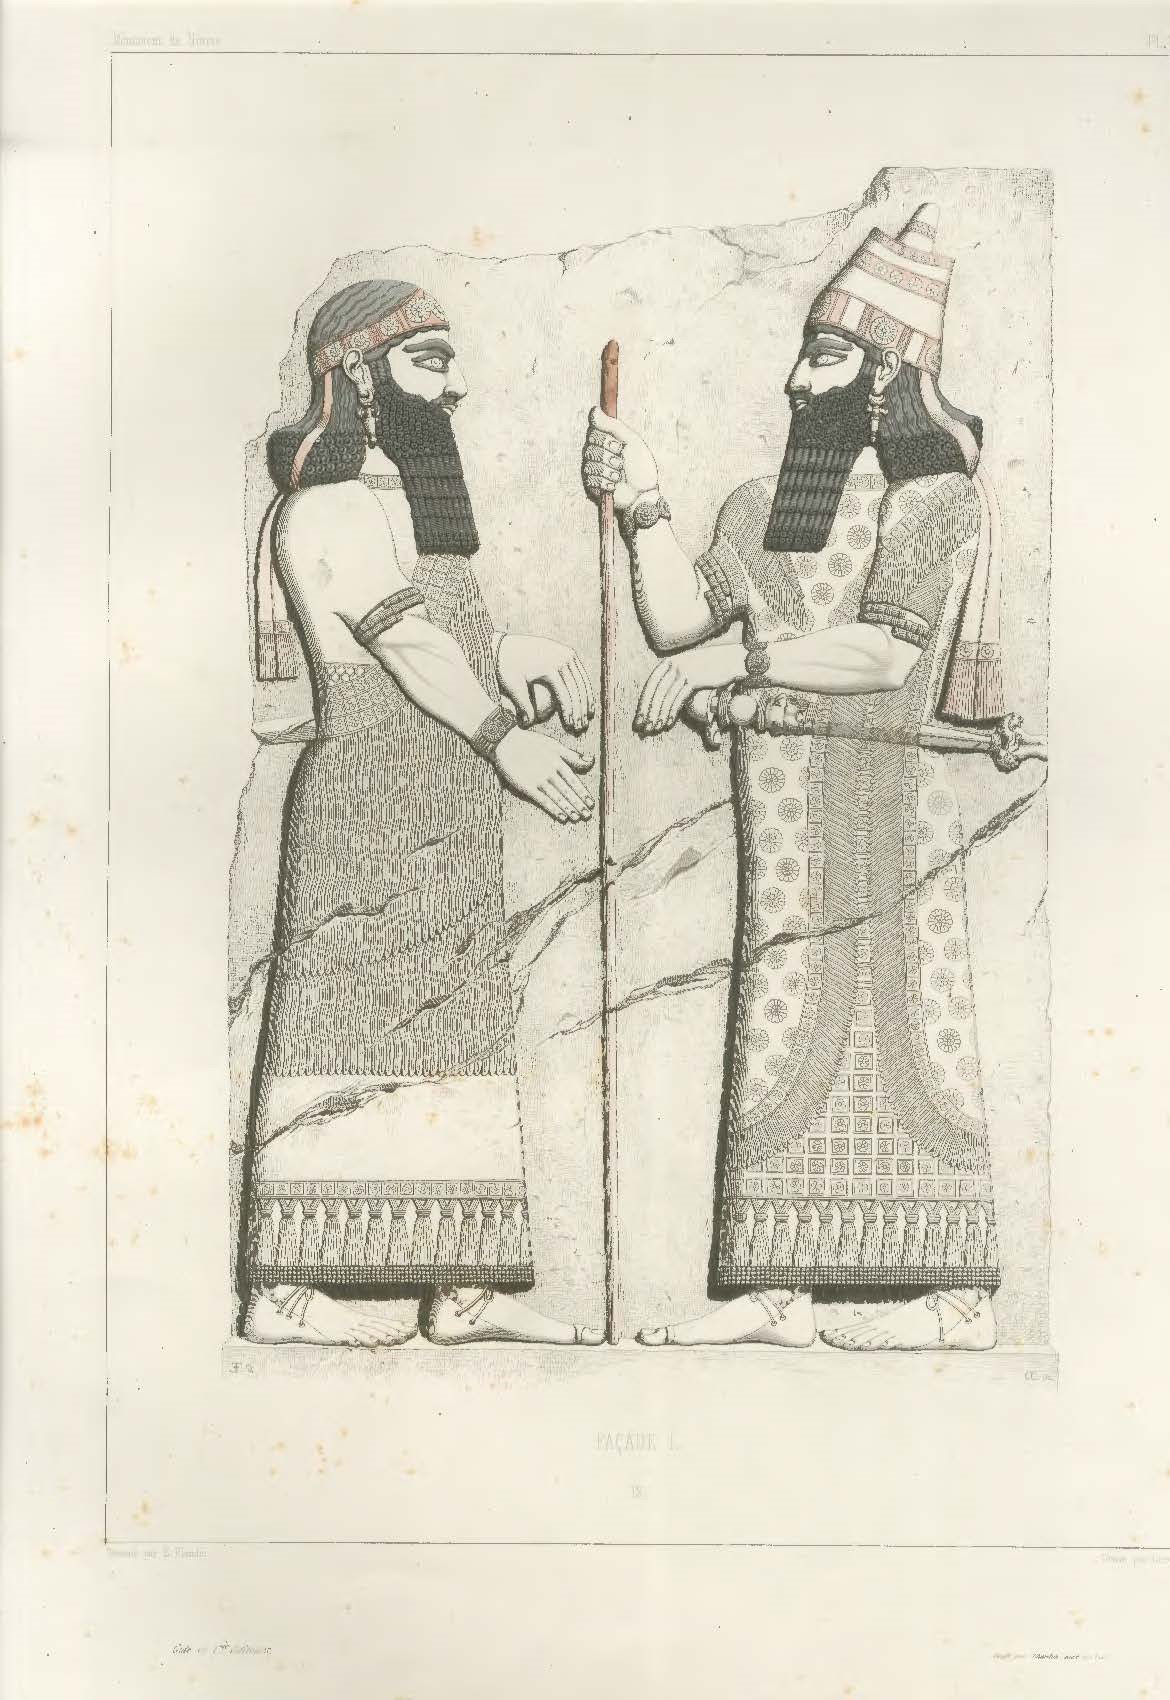 Illustration showing 2 figures